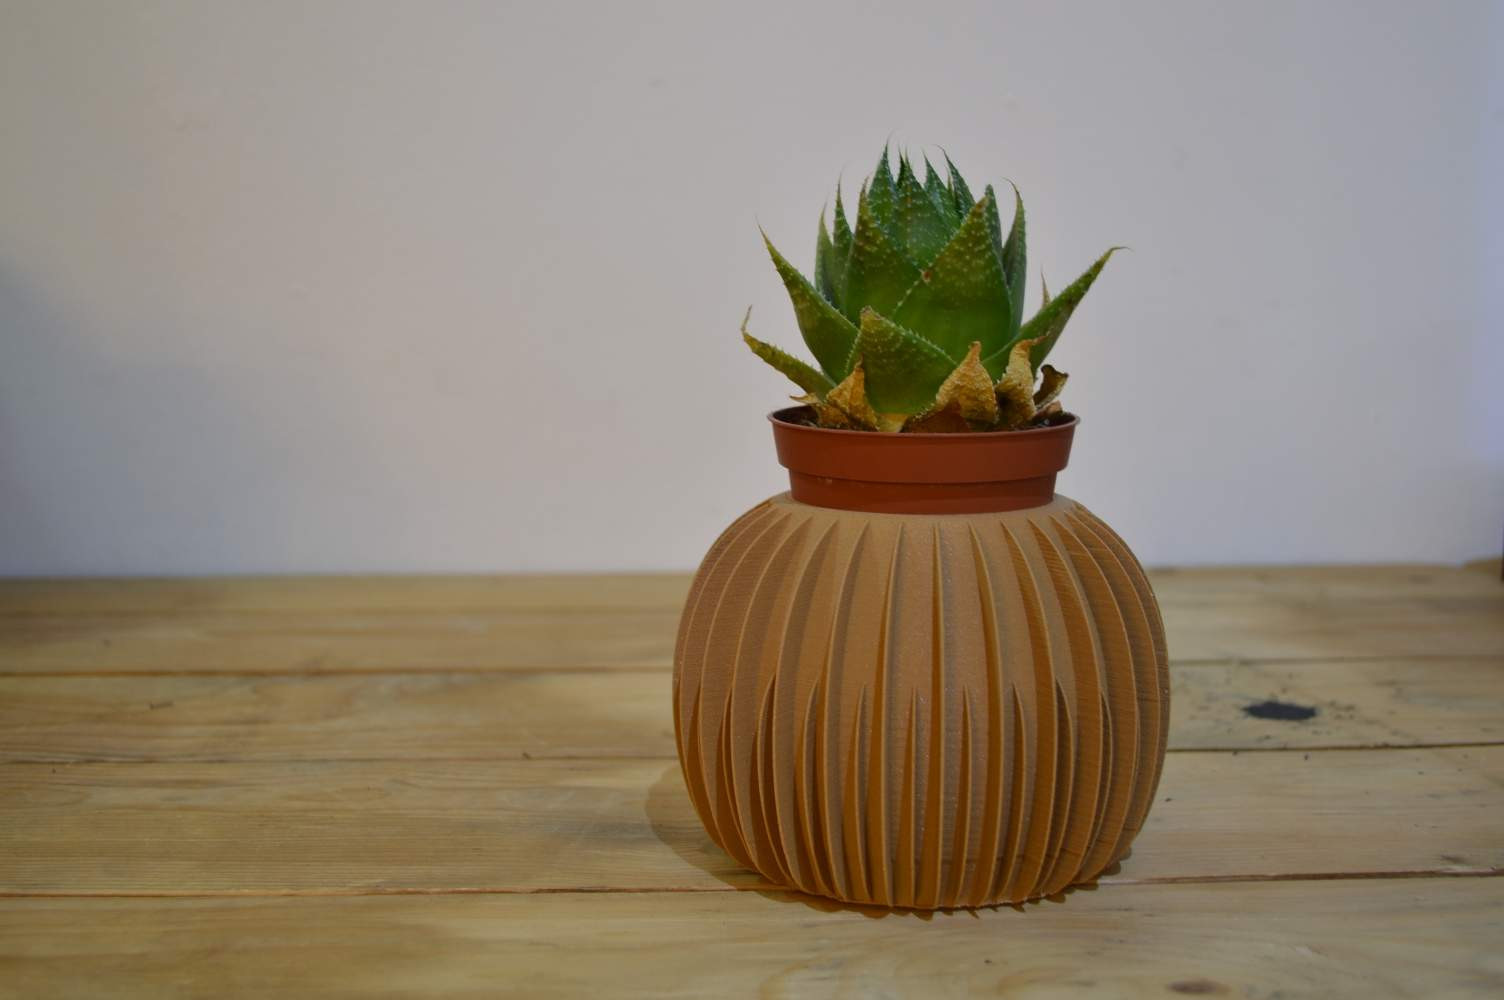 ceramic cactus vase of cactus vase by rikesh dhirajlal thingiverse with regard to cactus vase by rikesh dhirajlal may 28 2017 view original